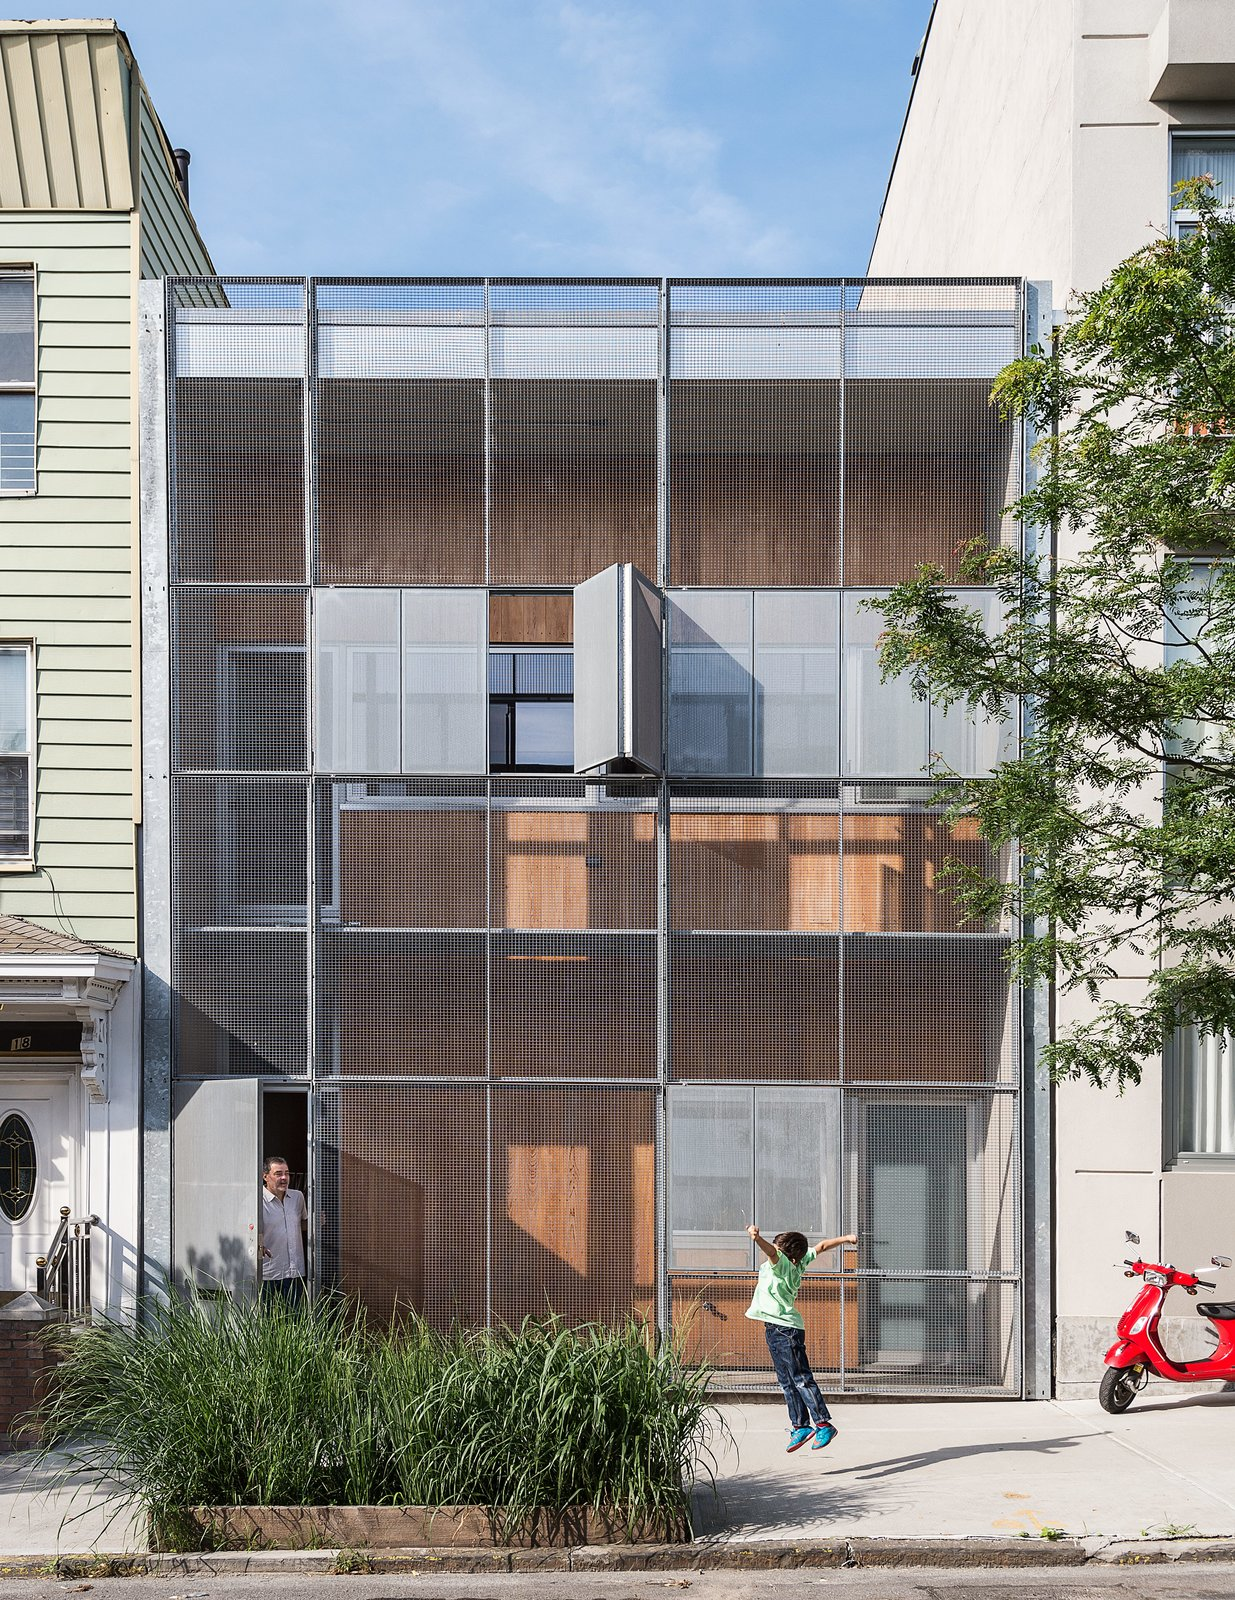 The Baumann family residence in Gowanus, Brooklyn, is all geometry up front, with a rectilinear grid of steel and cypress comprising the structure's double facade. Tagged: Exterior, Metal Siding Material, House, and Wood Siding Material. Minimalist Facades We Love by Zachary Edelson